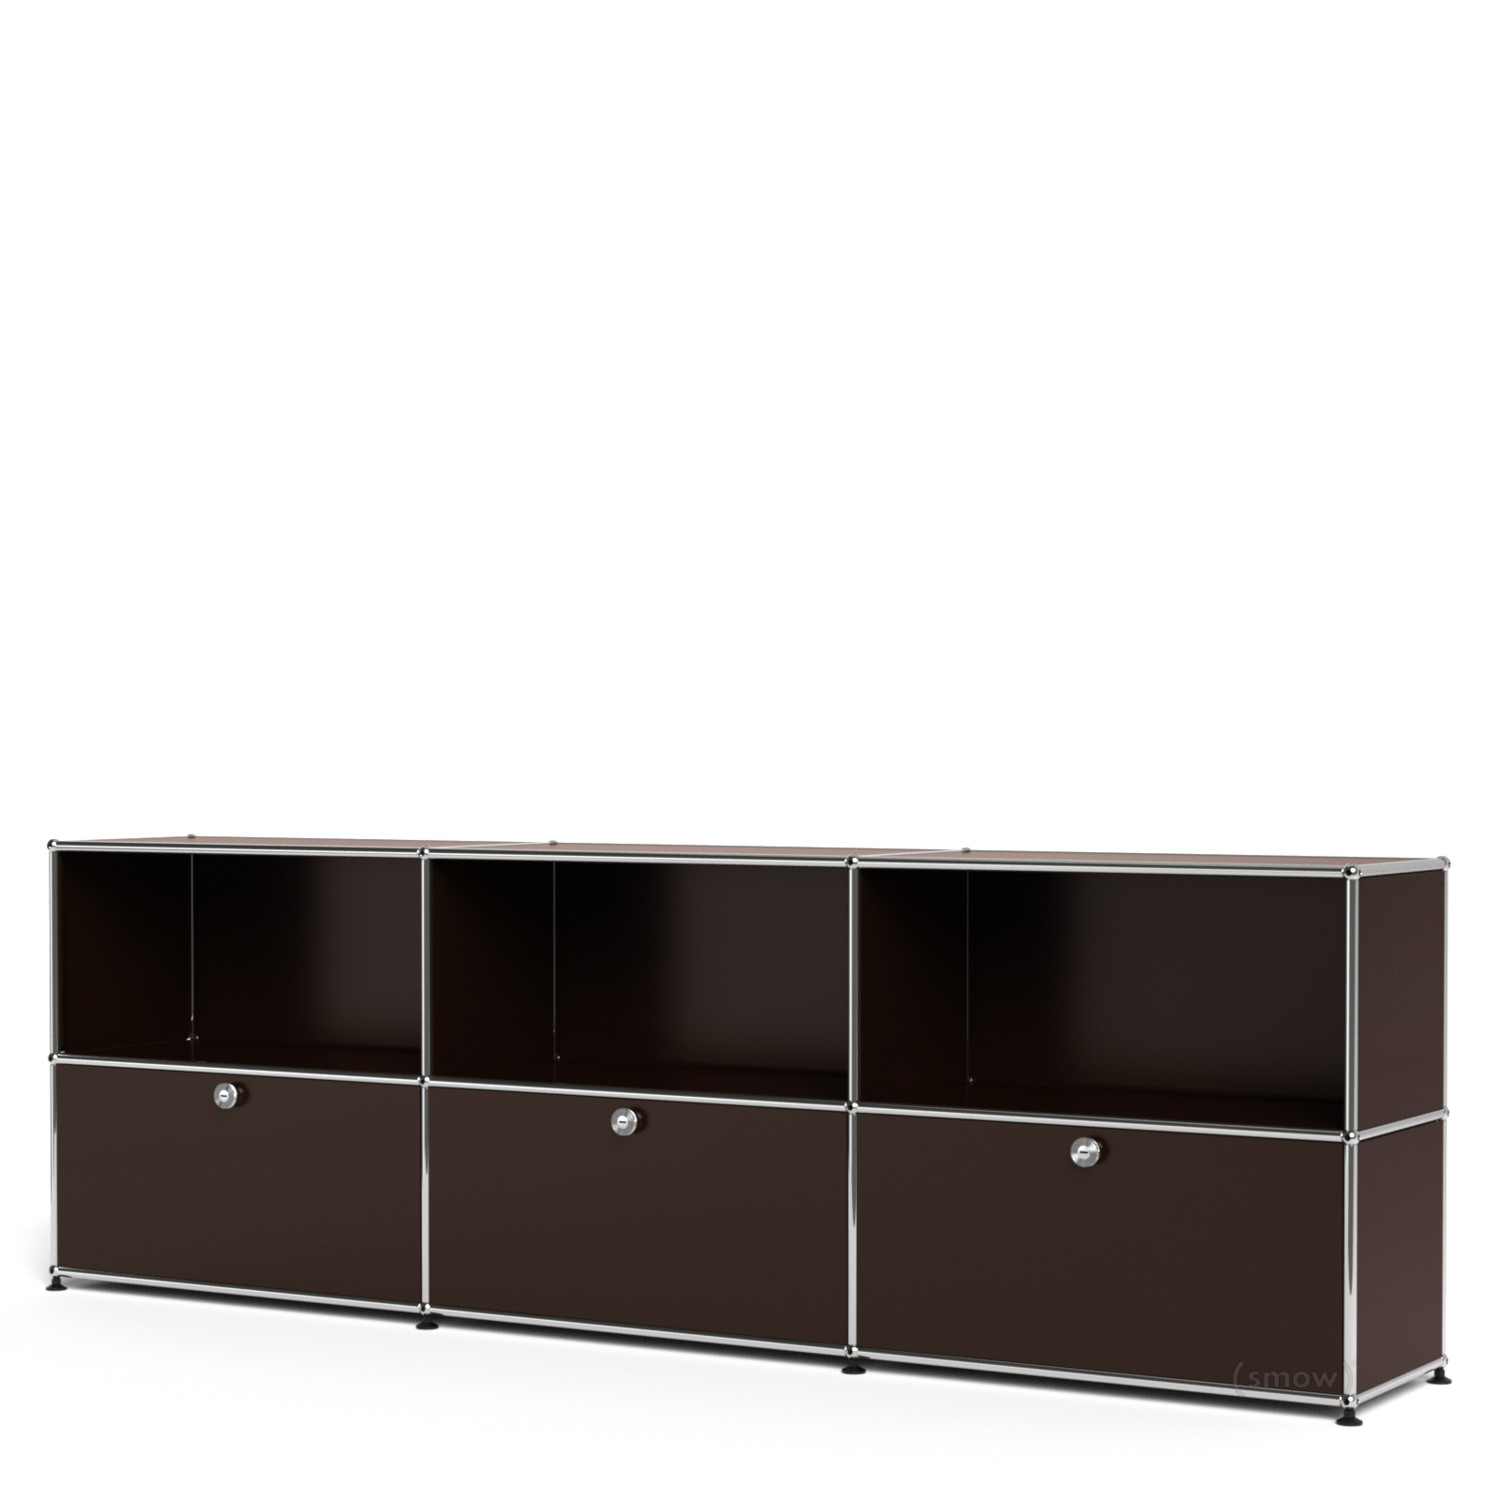 Usm haller sideboard xl customisable usm brown open for Sideboard usm